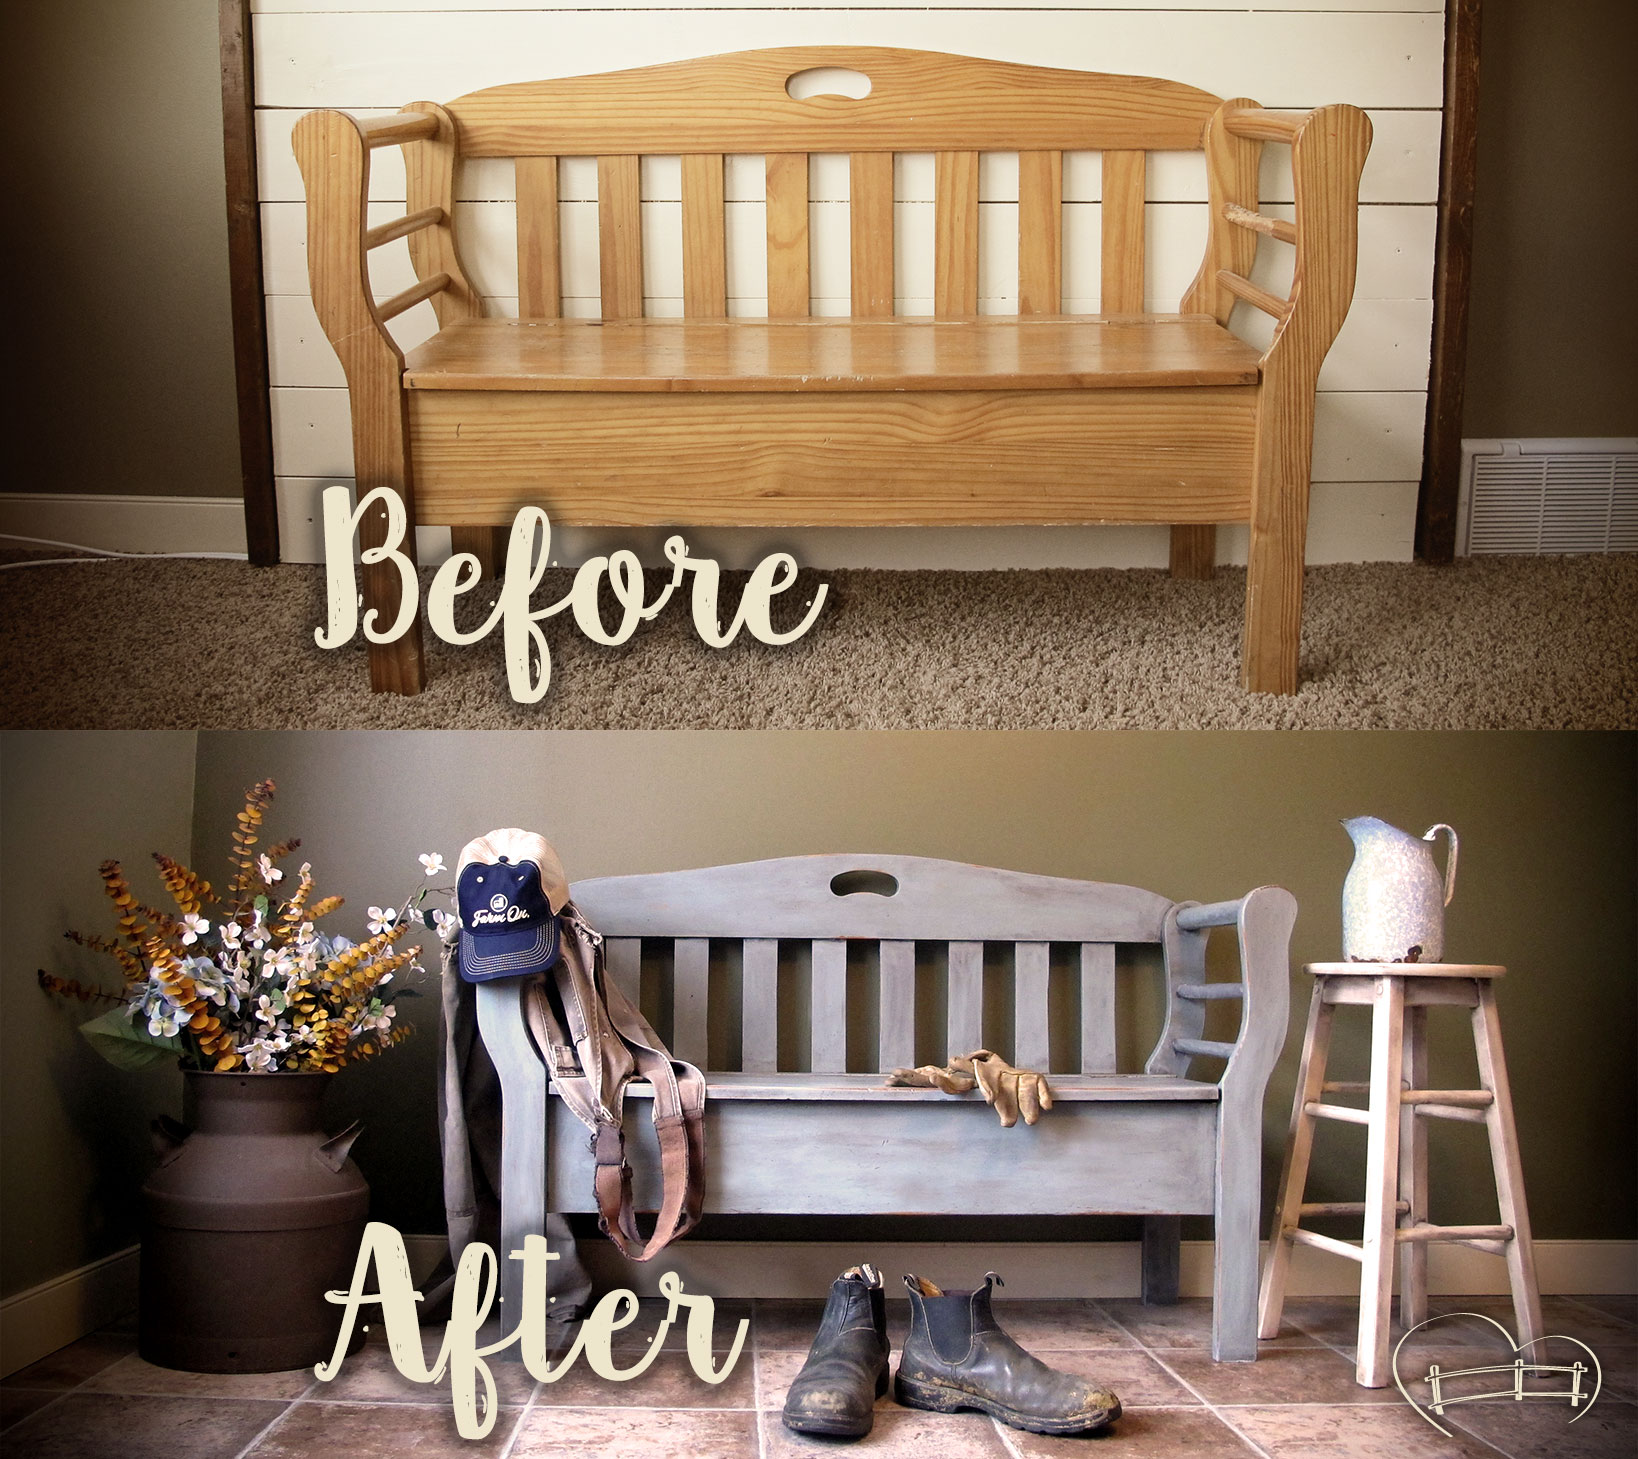 bench-beforeafter